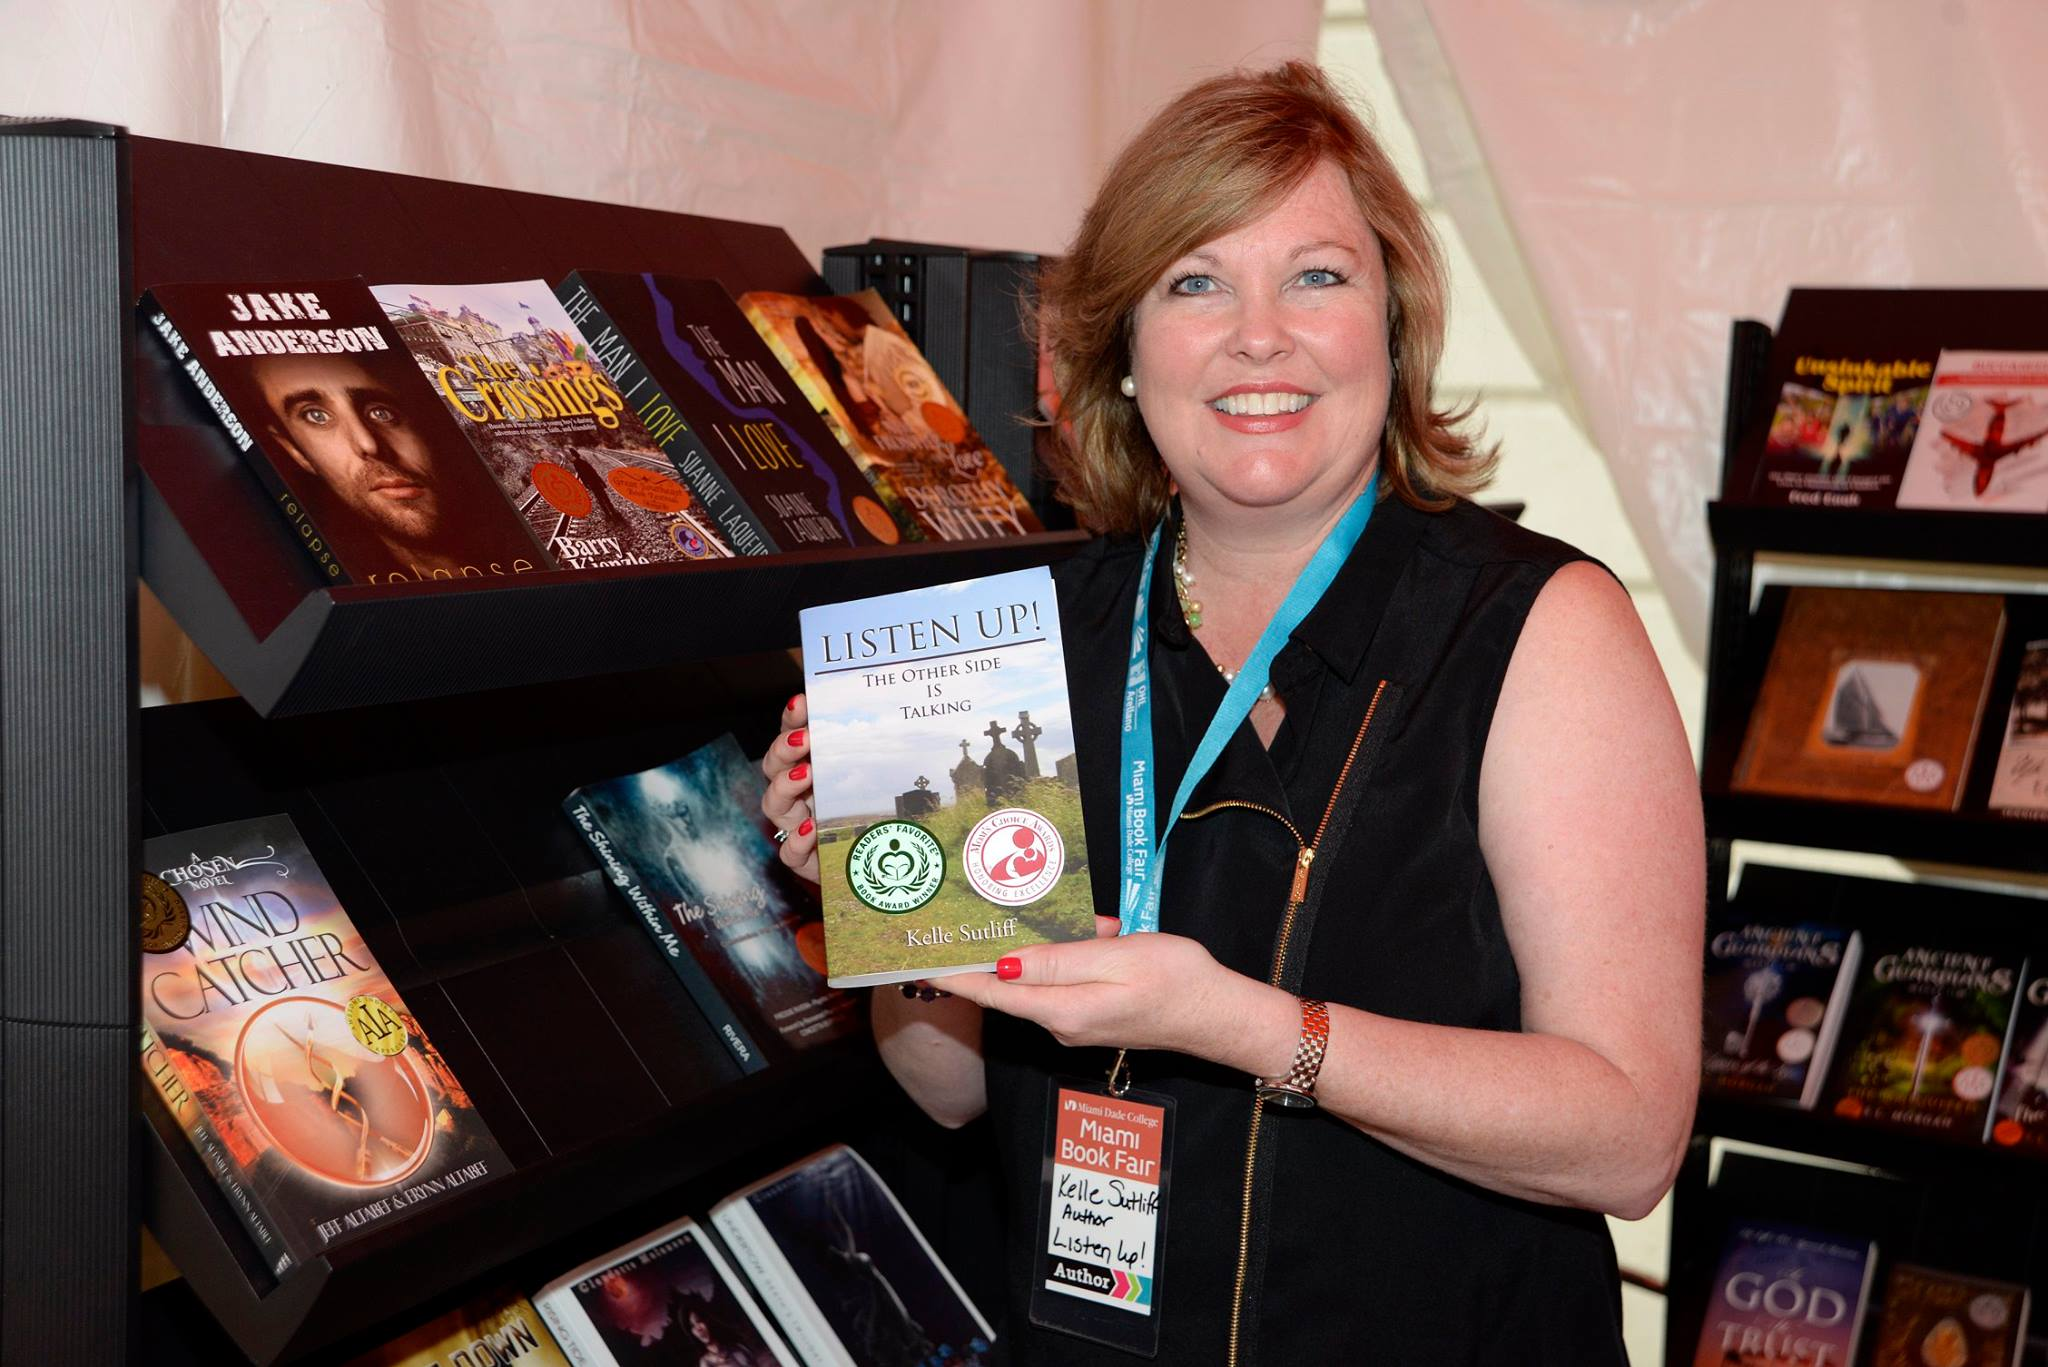 Kelle Sutliff at Miami Book Fair International